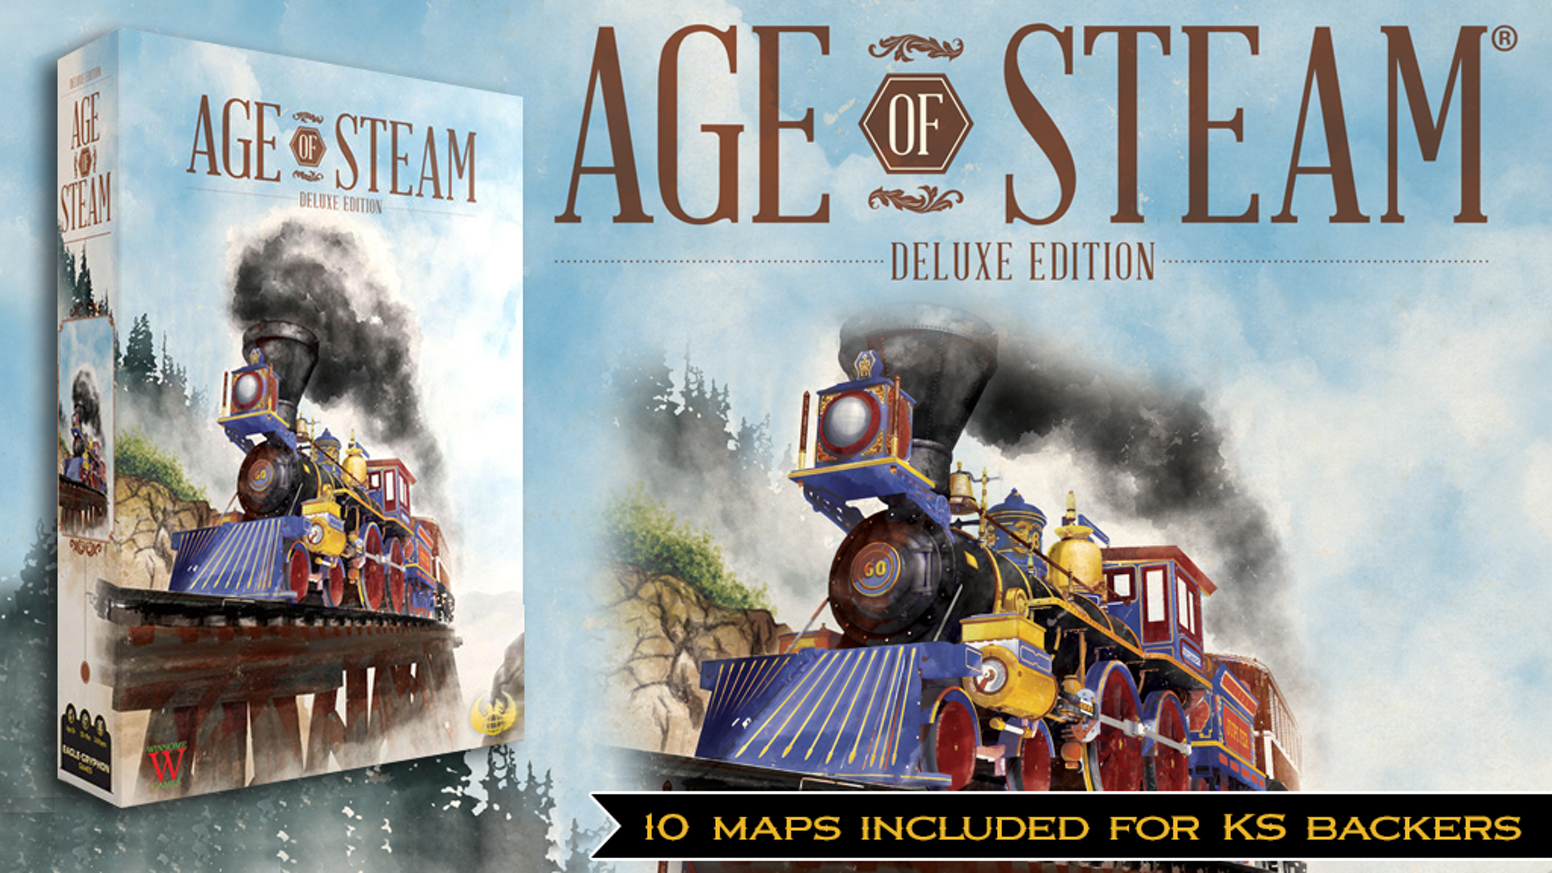 A completely re-envisioned, artistically-rejuvenated deluxe edition of the  classic railroad game!